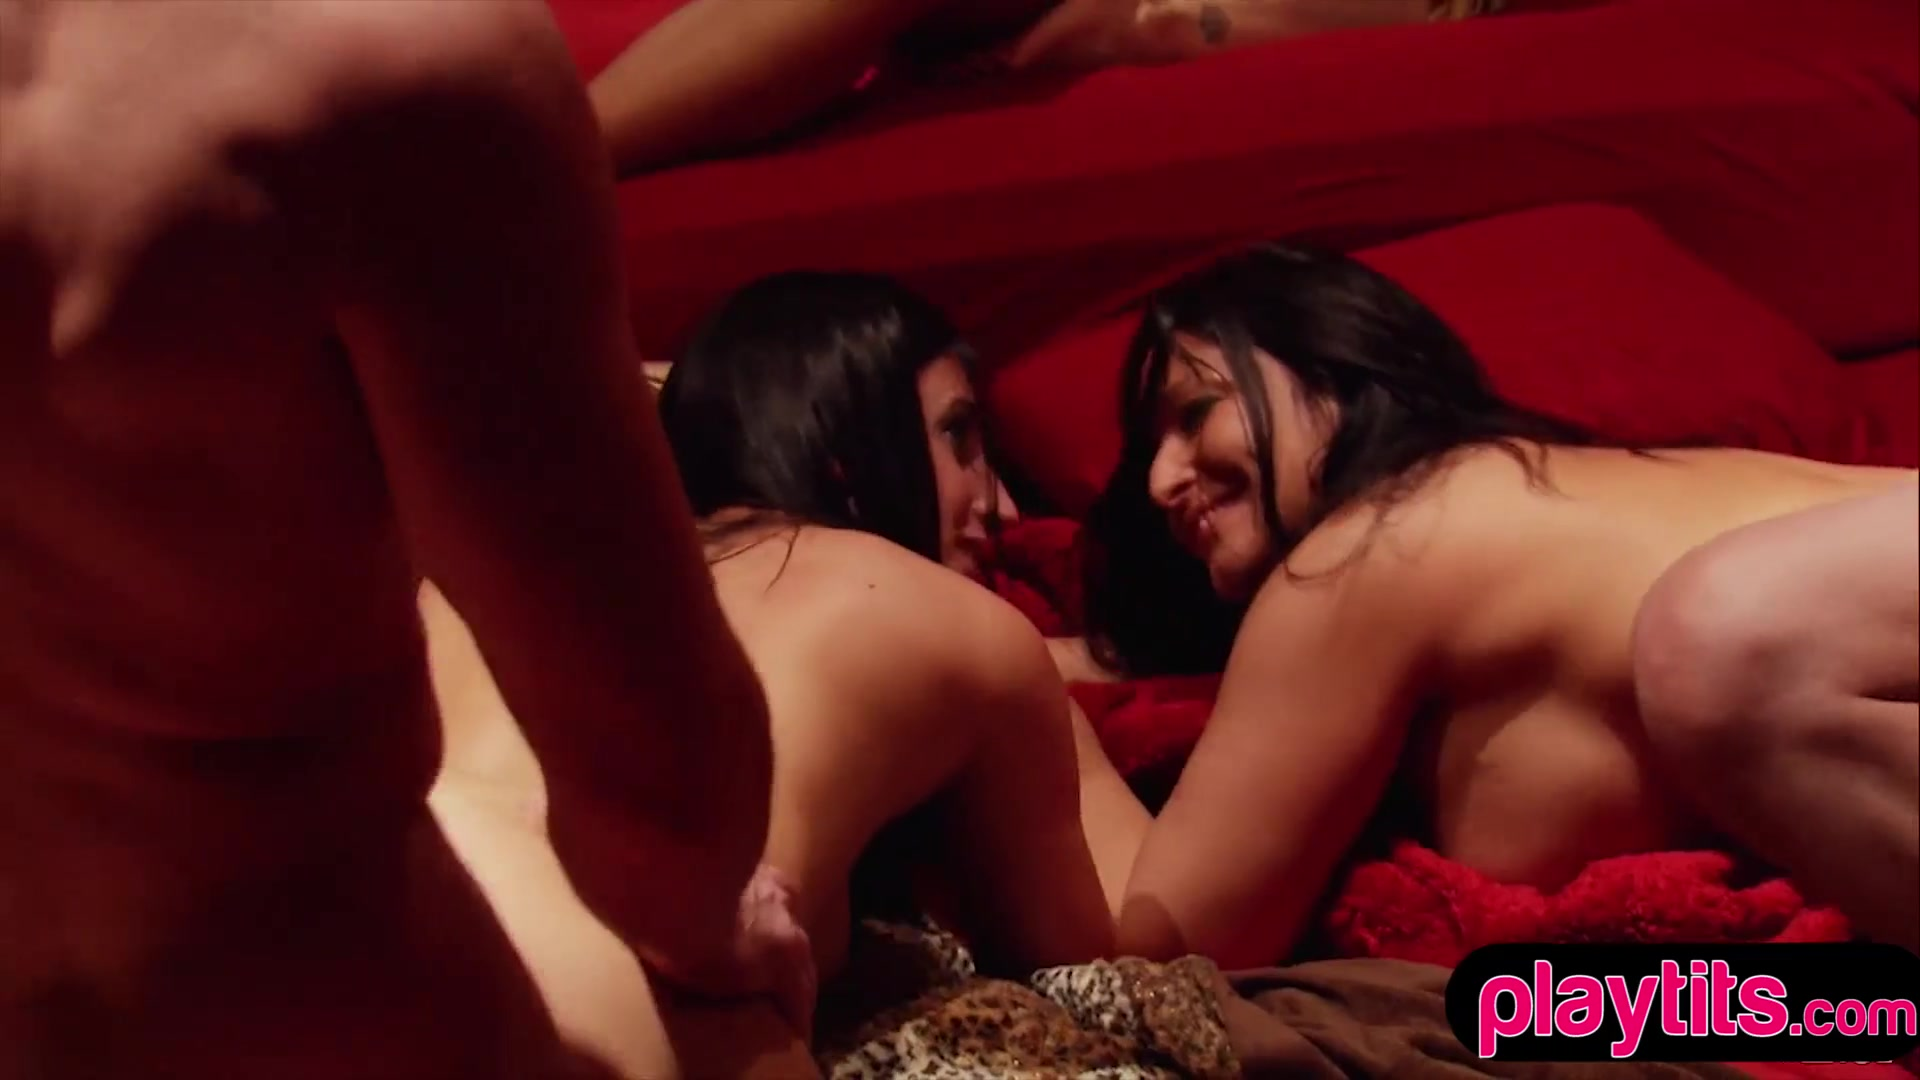 lesbians taking off clothes free nude movies